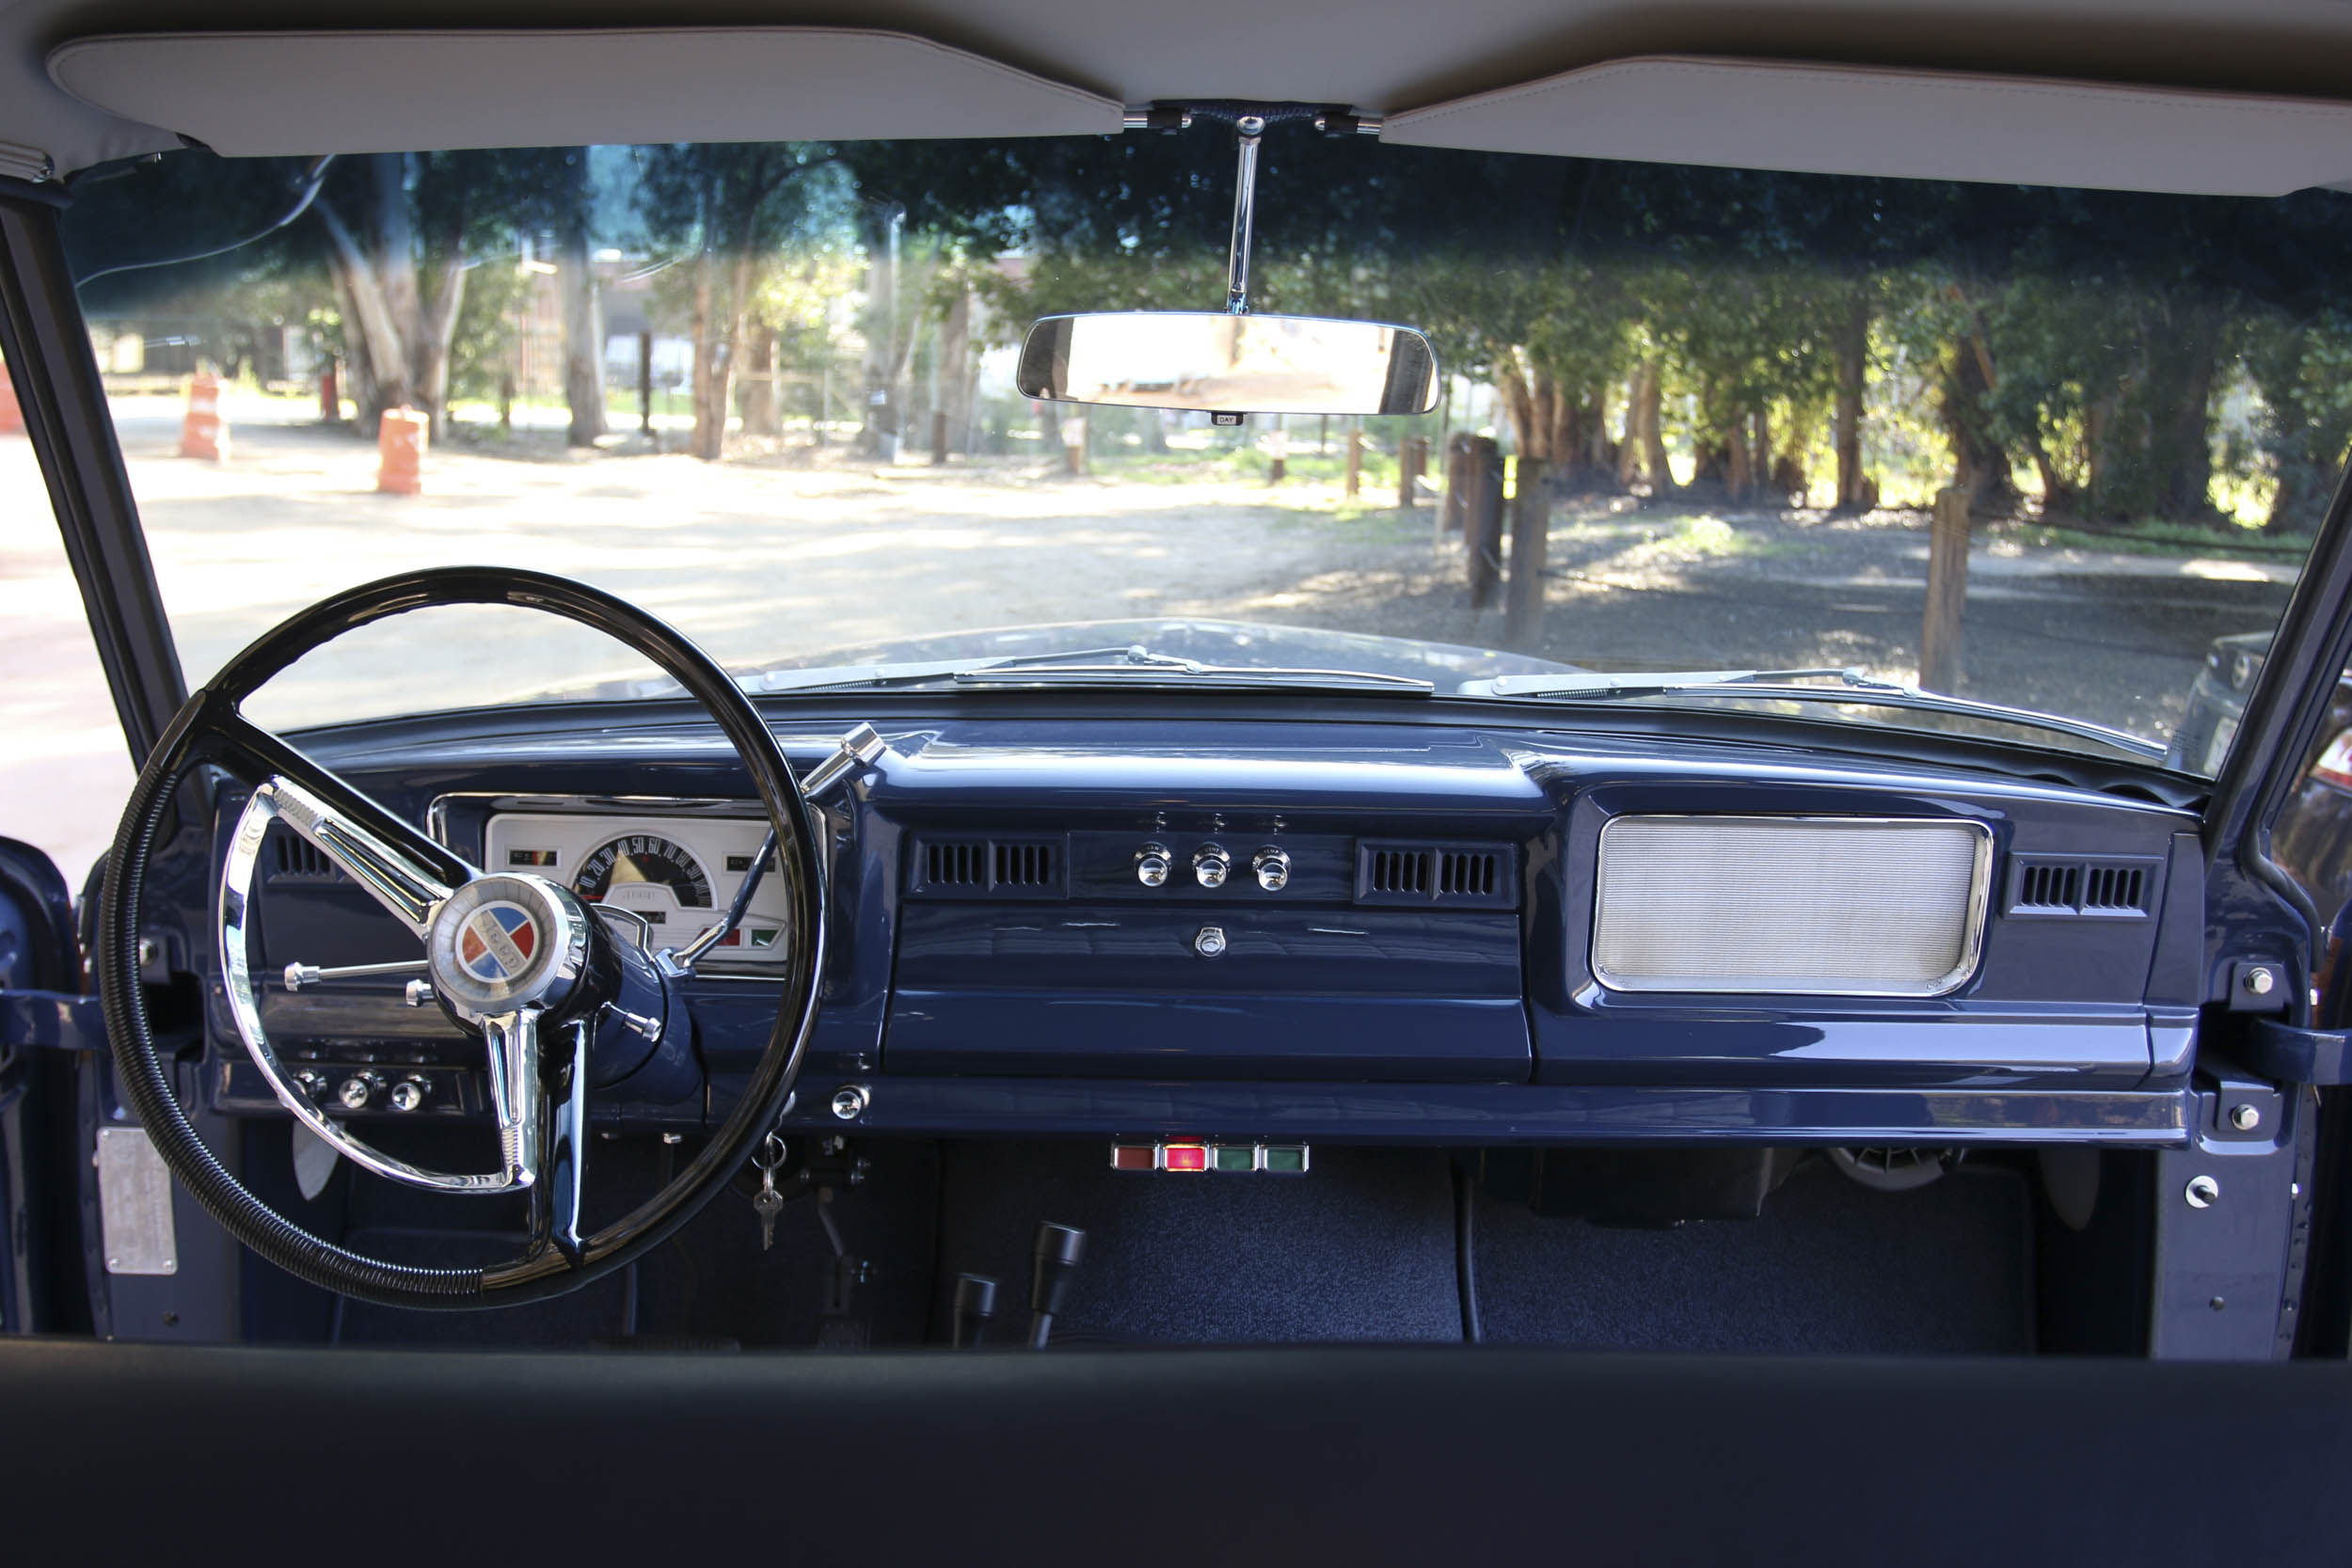 ICON Wagoneer view from the backseat